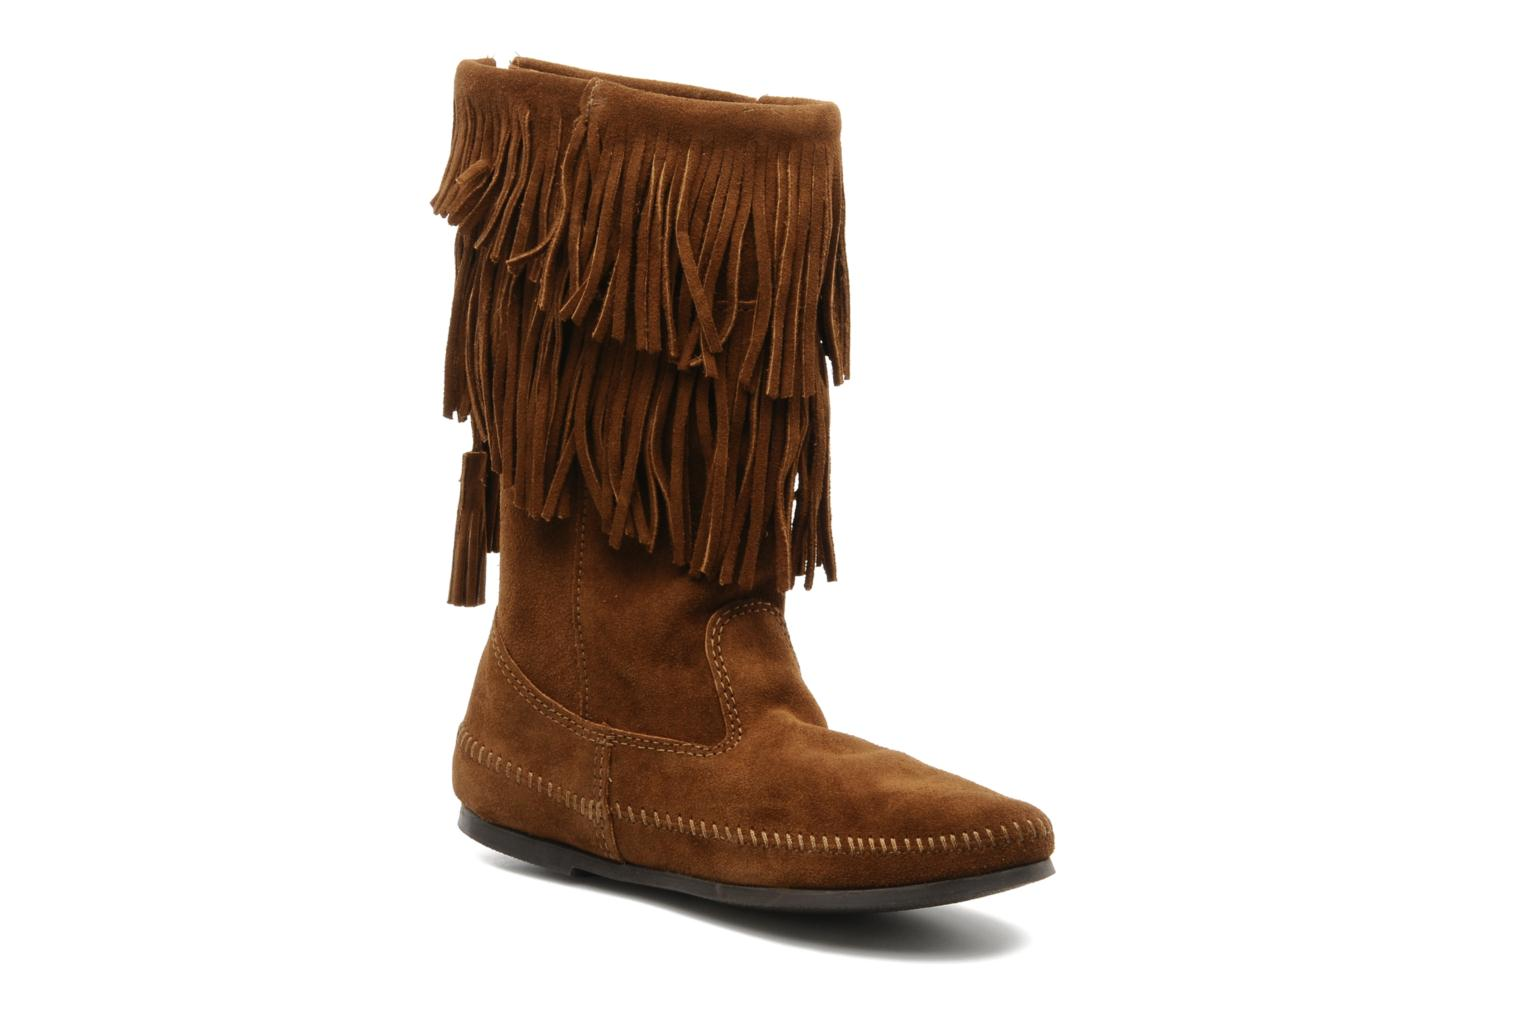 CALF HI 2LAYER FRINGE DUSTY BROWN SUEDE